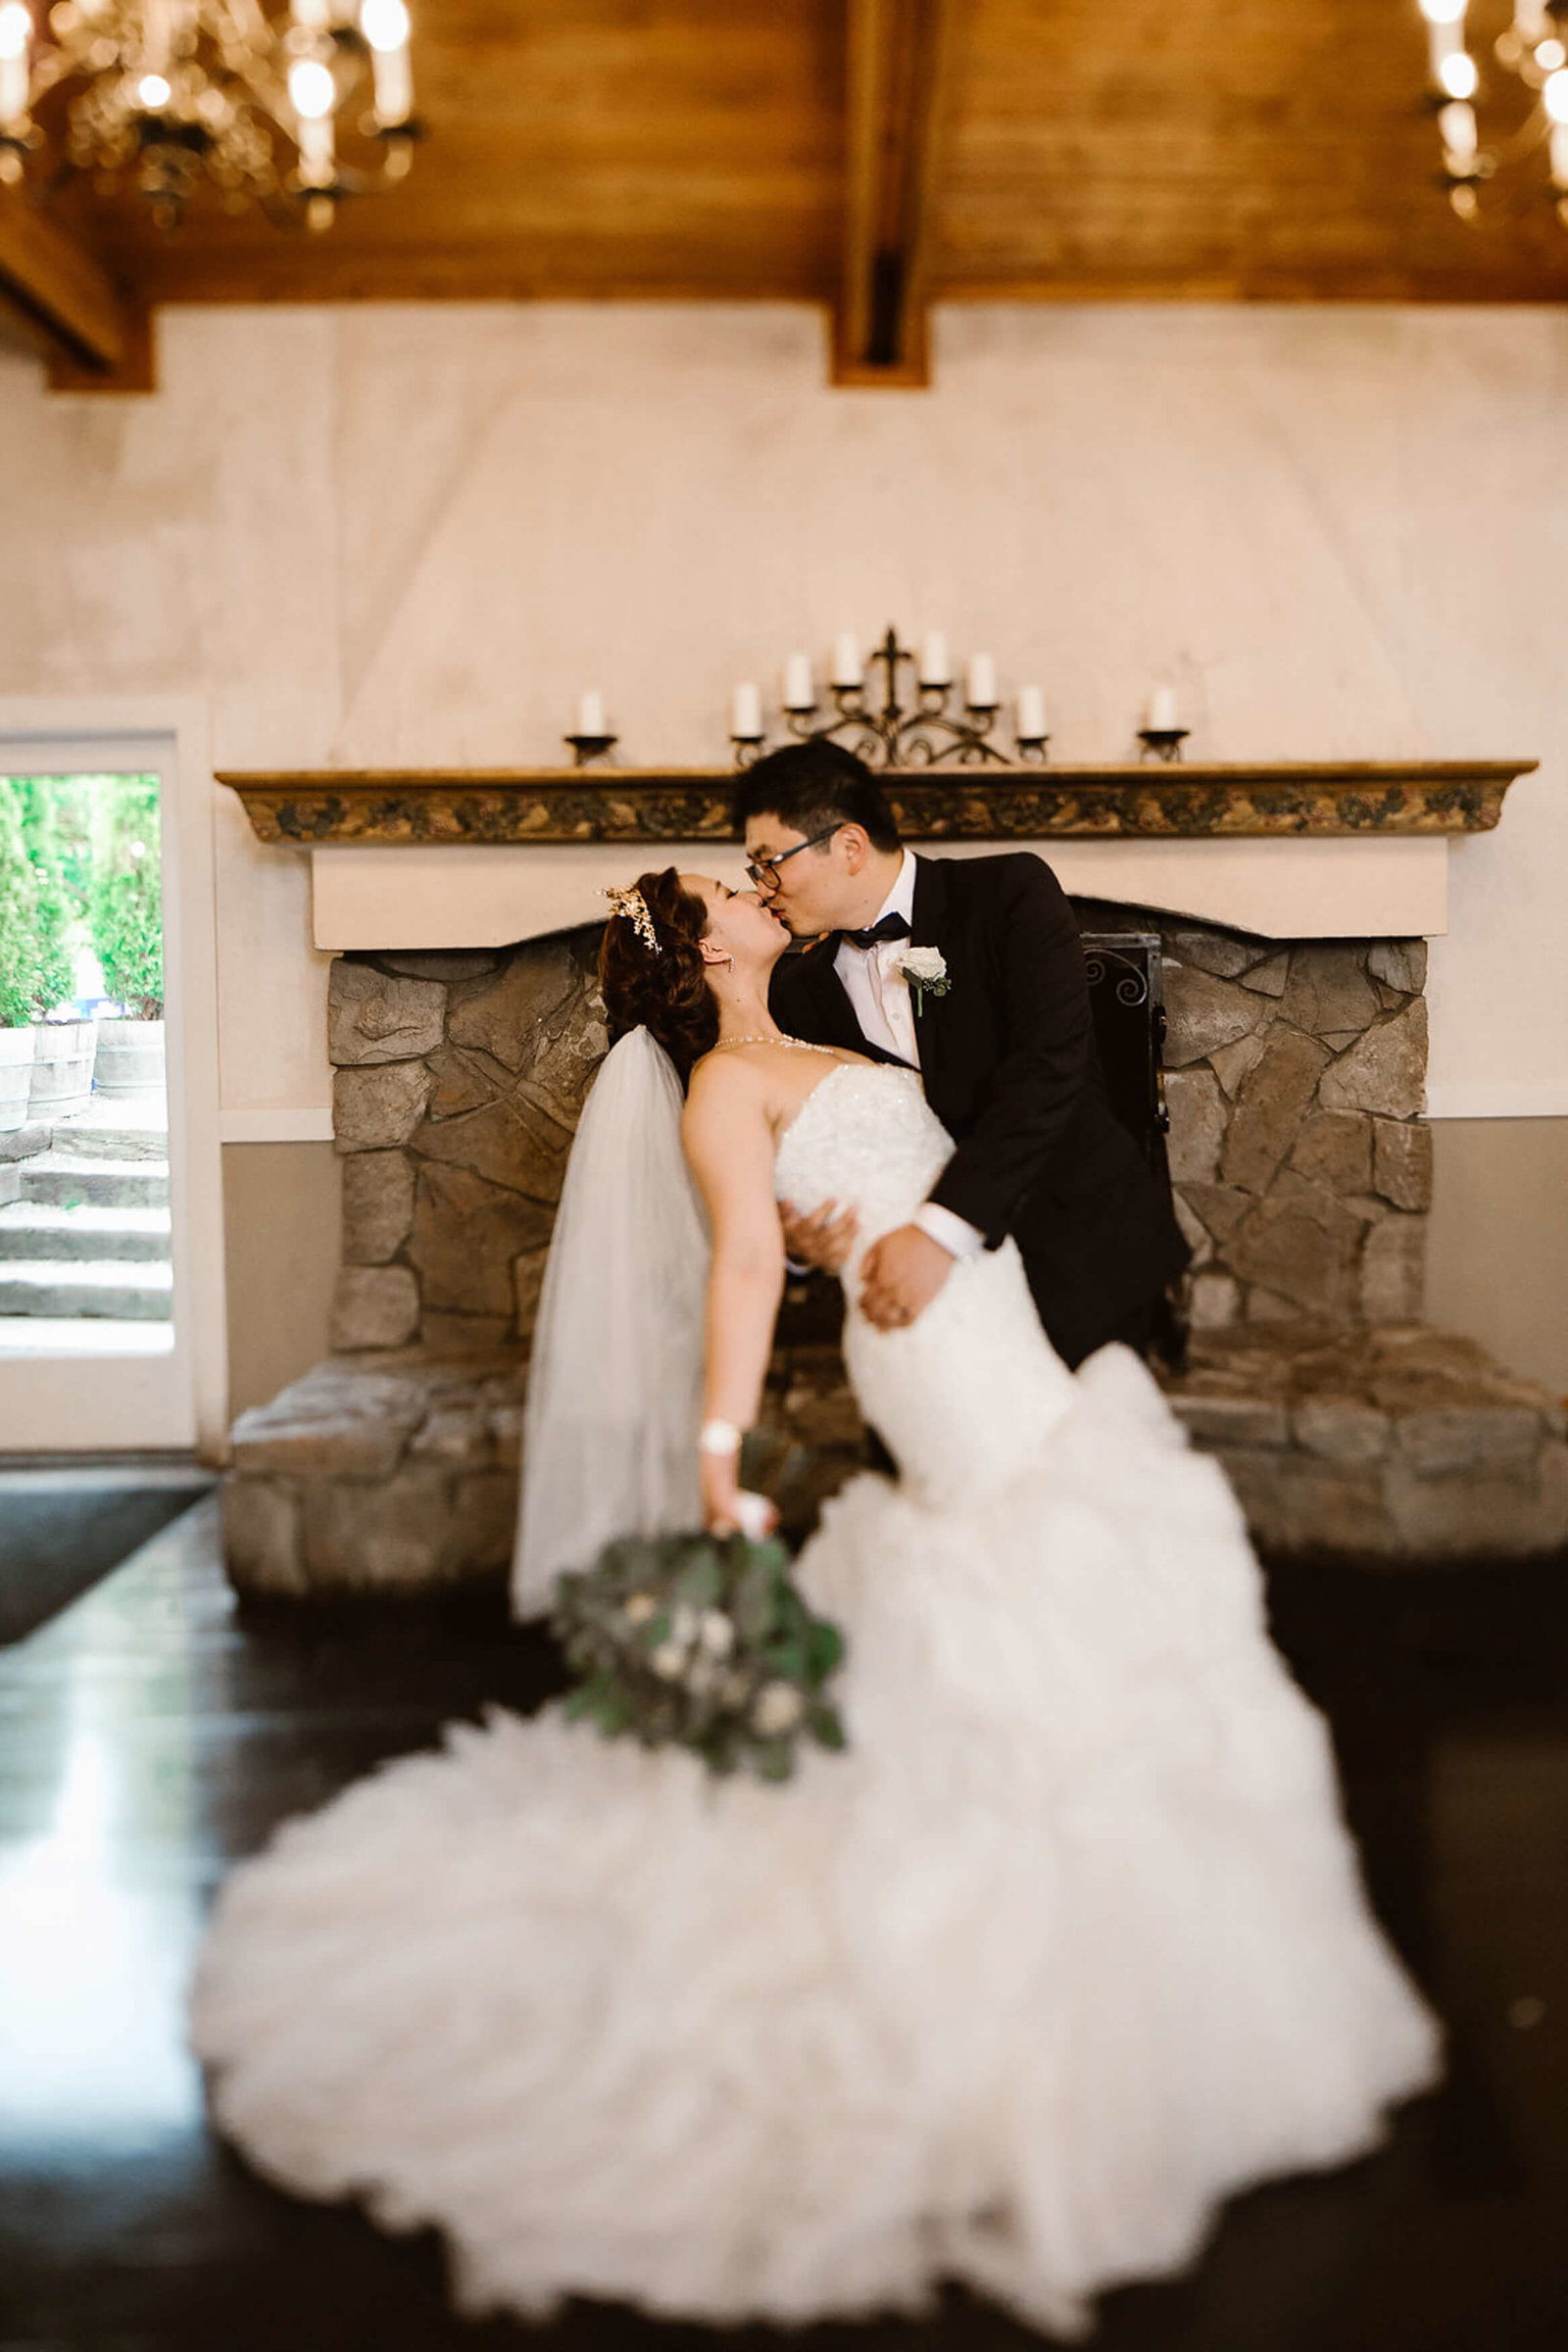 Qian+Jackson_DeLille_Cellars_Woodinville_wedding_by_Adina_Preston_Weddings266